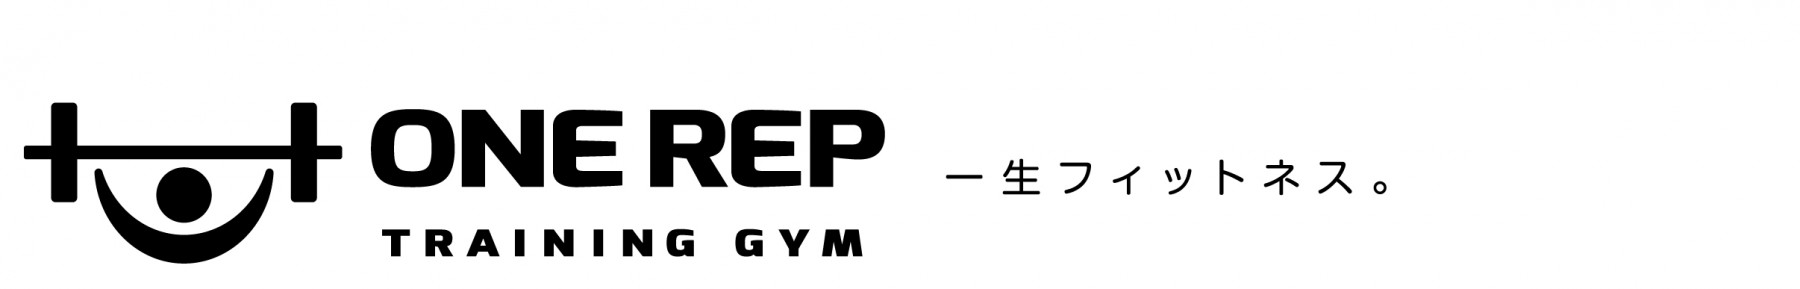 ONE REP GYM